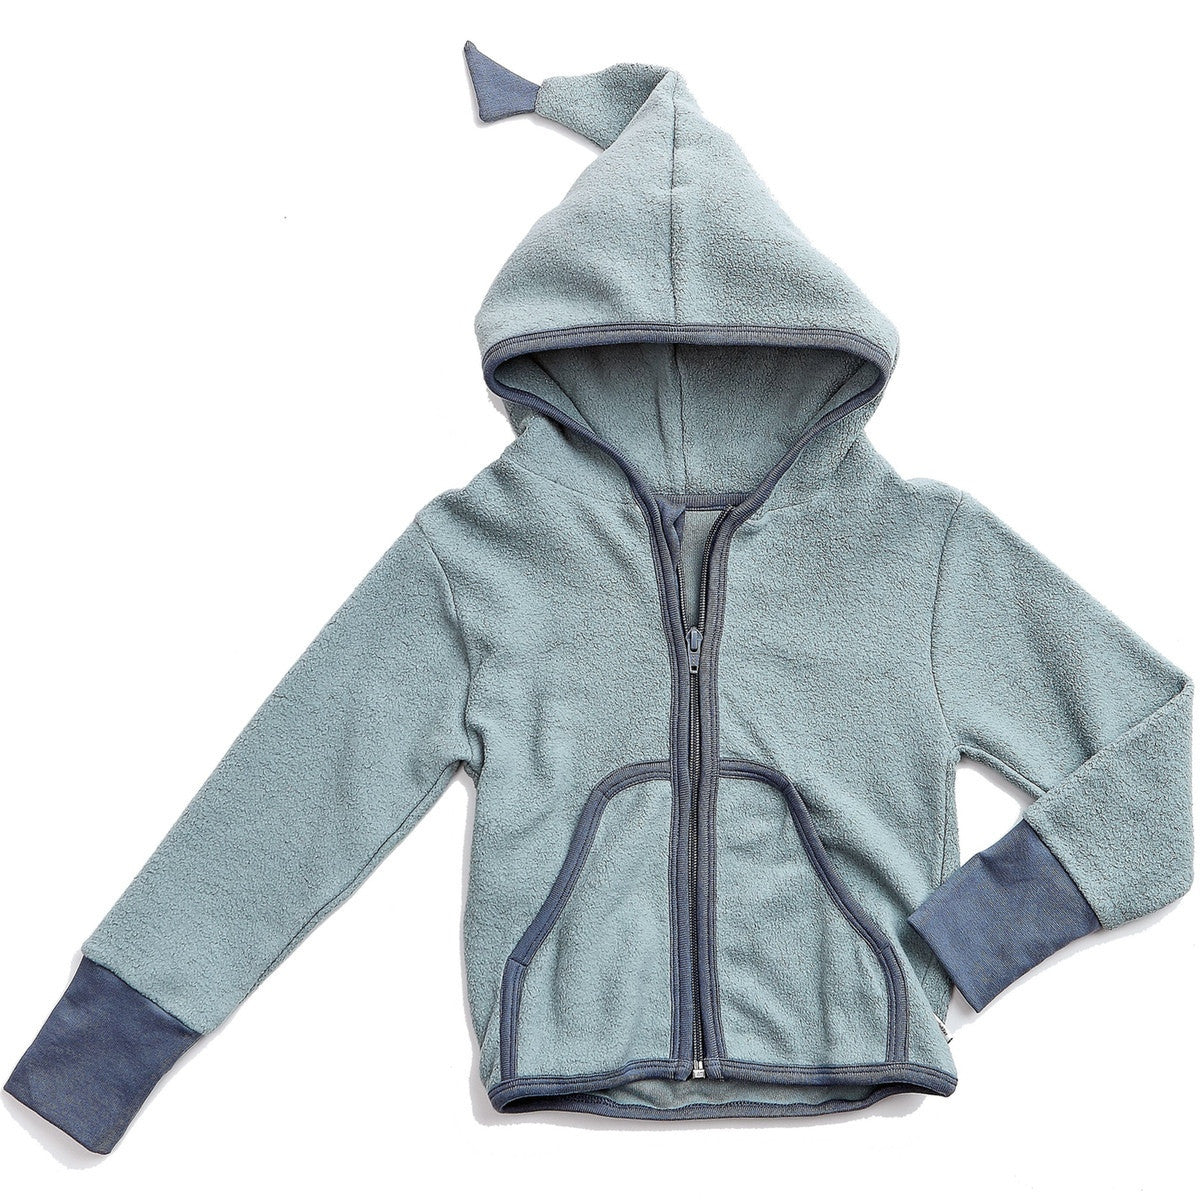 Okker-Gokker organic cotton fleece cardigan, dusty blue